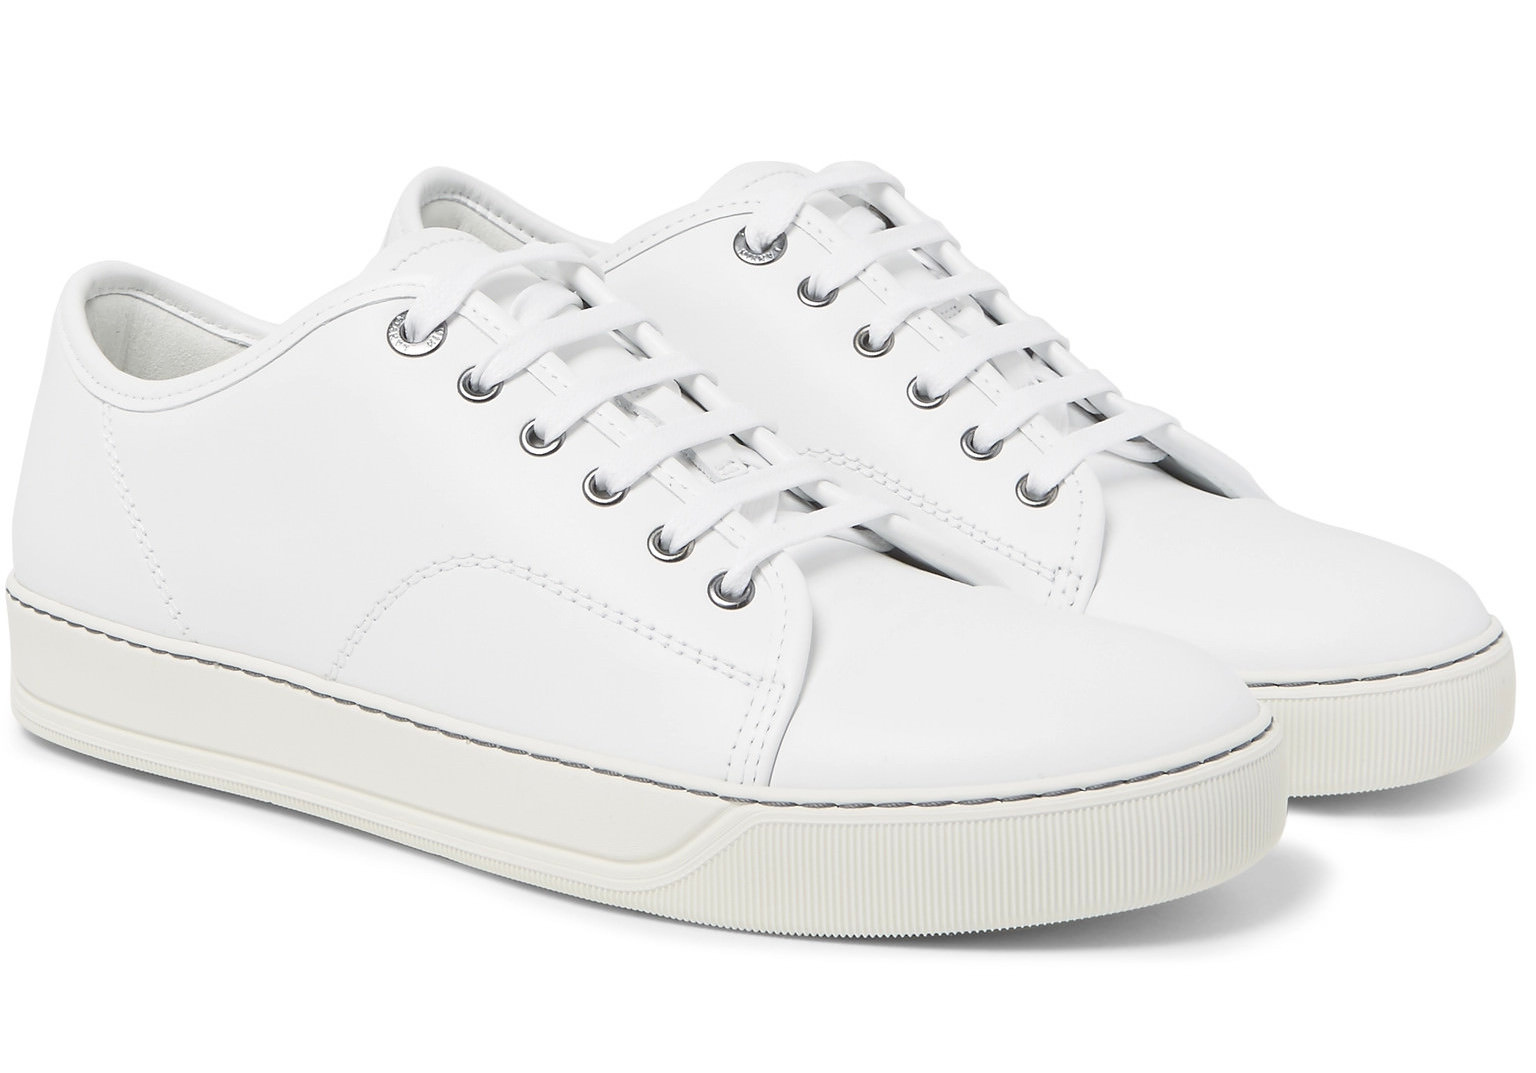 Homme Aux Alternatives Smith Stan 10 D'adidas Sélection qSCTnxO